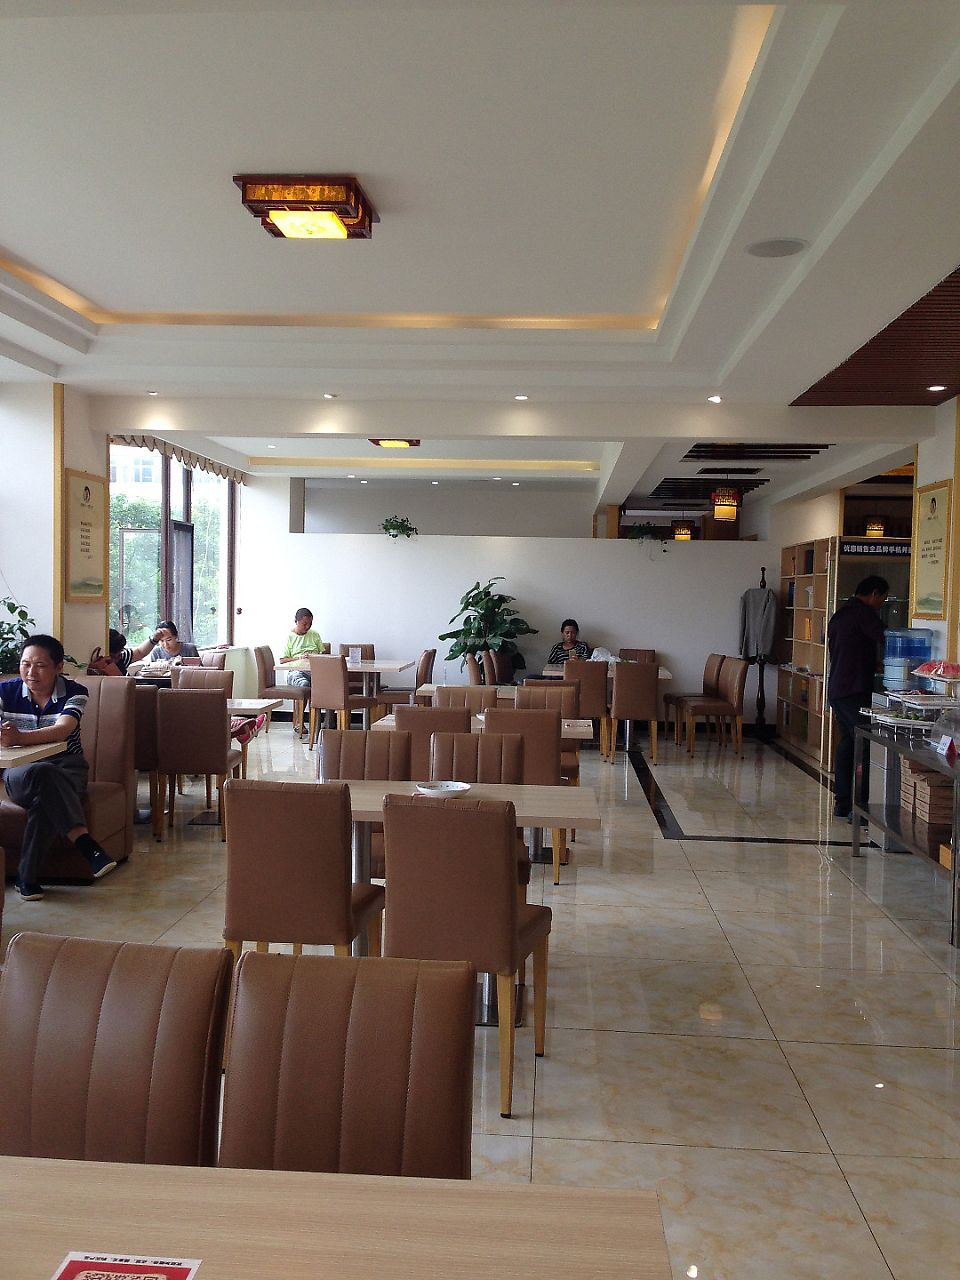 """Photo of Yi Mei Le Vegetarian Restaurant - maybe closed  by <a href=""""/members/profile/Stevie"""">Stevie</a> <br/> July 1, 2016  - <a href='/contact/abuse/image/75818/368202'>Report</a>"""